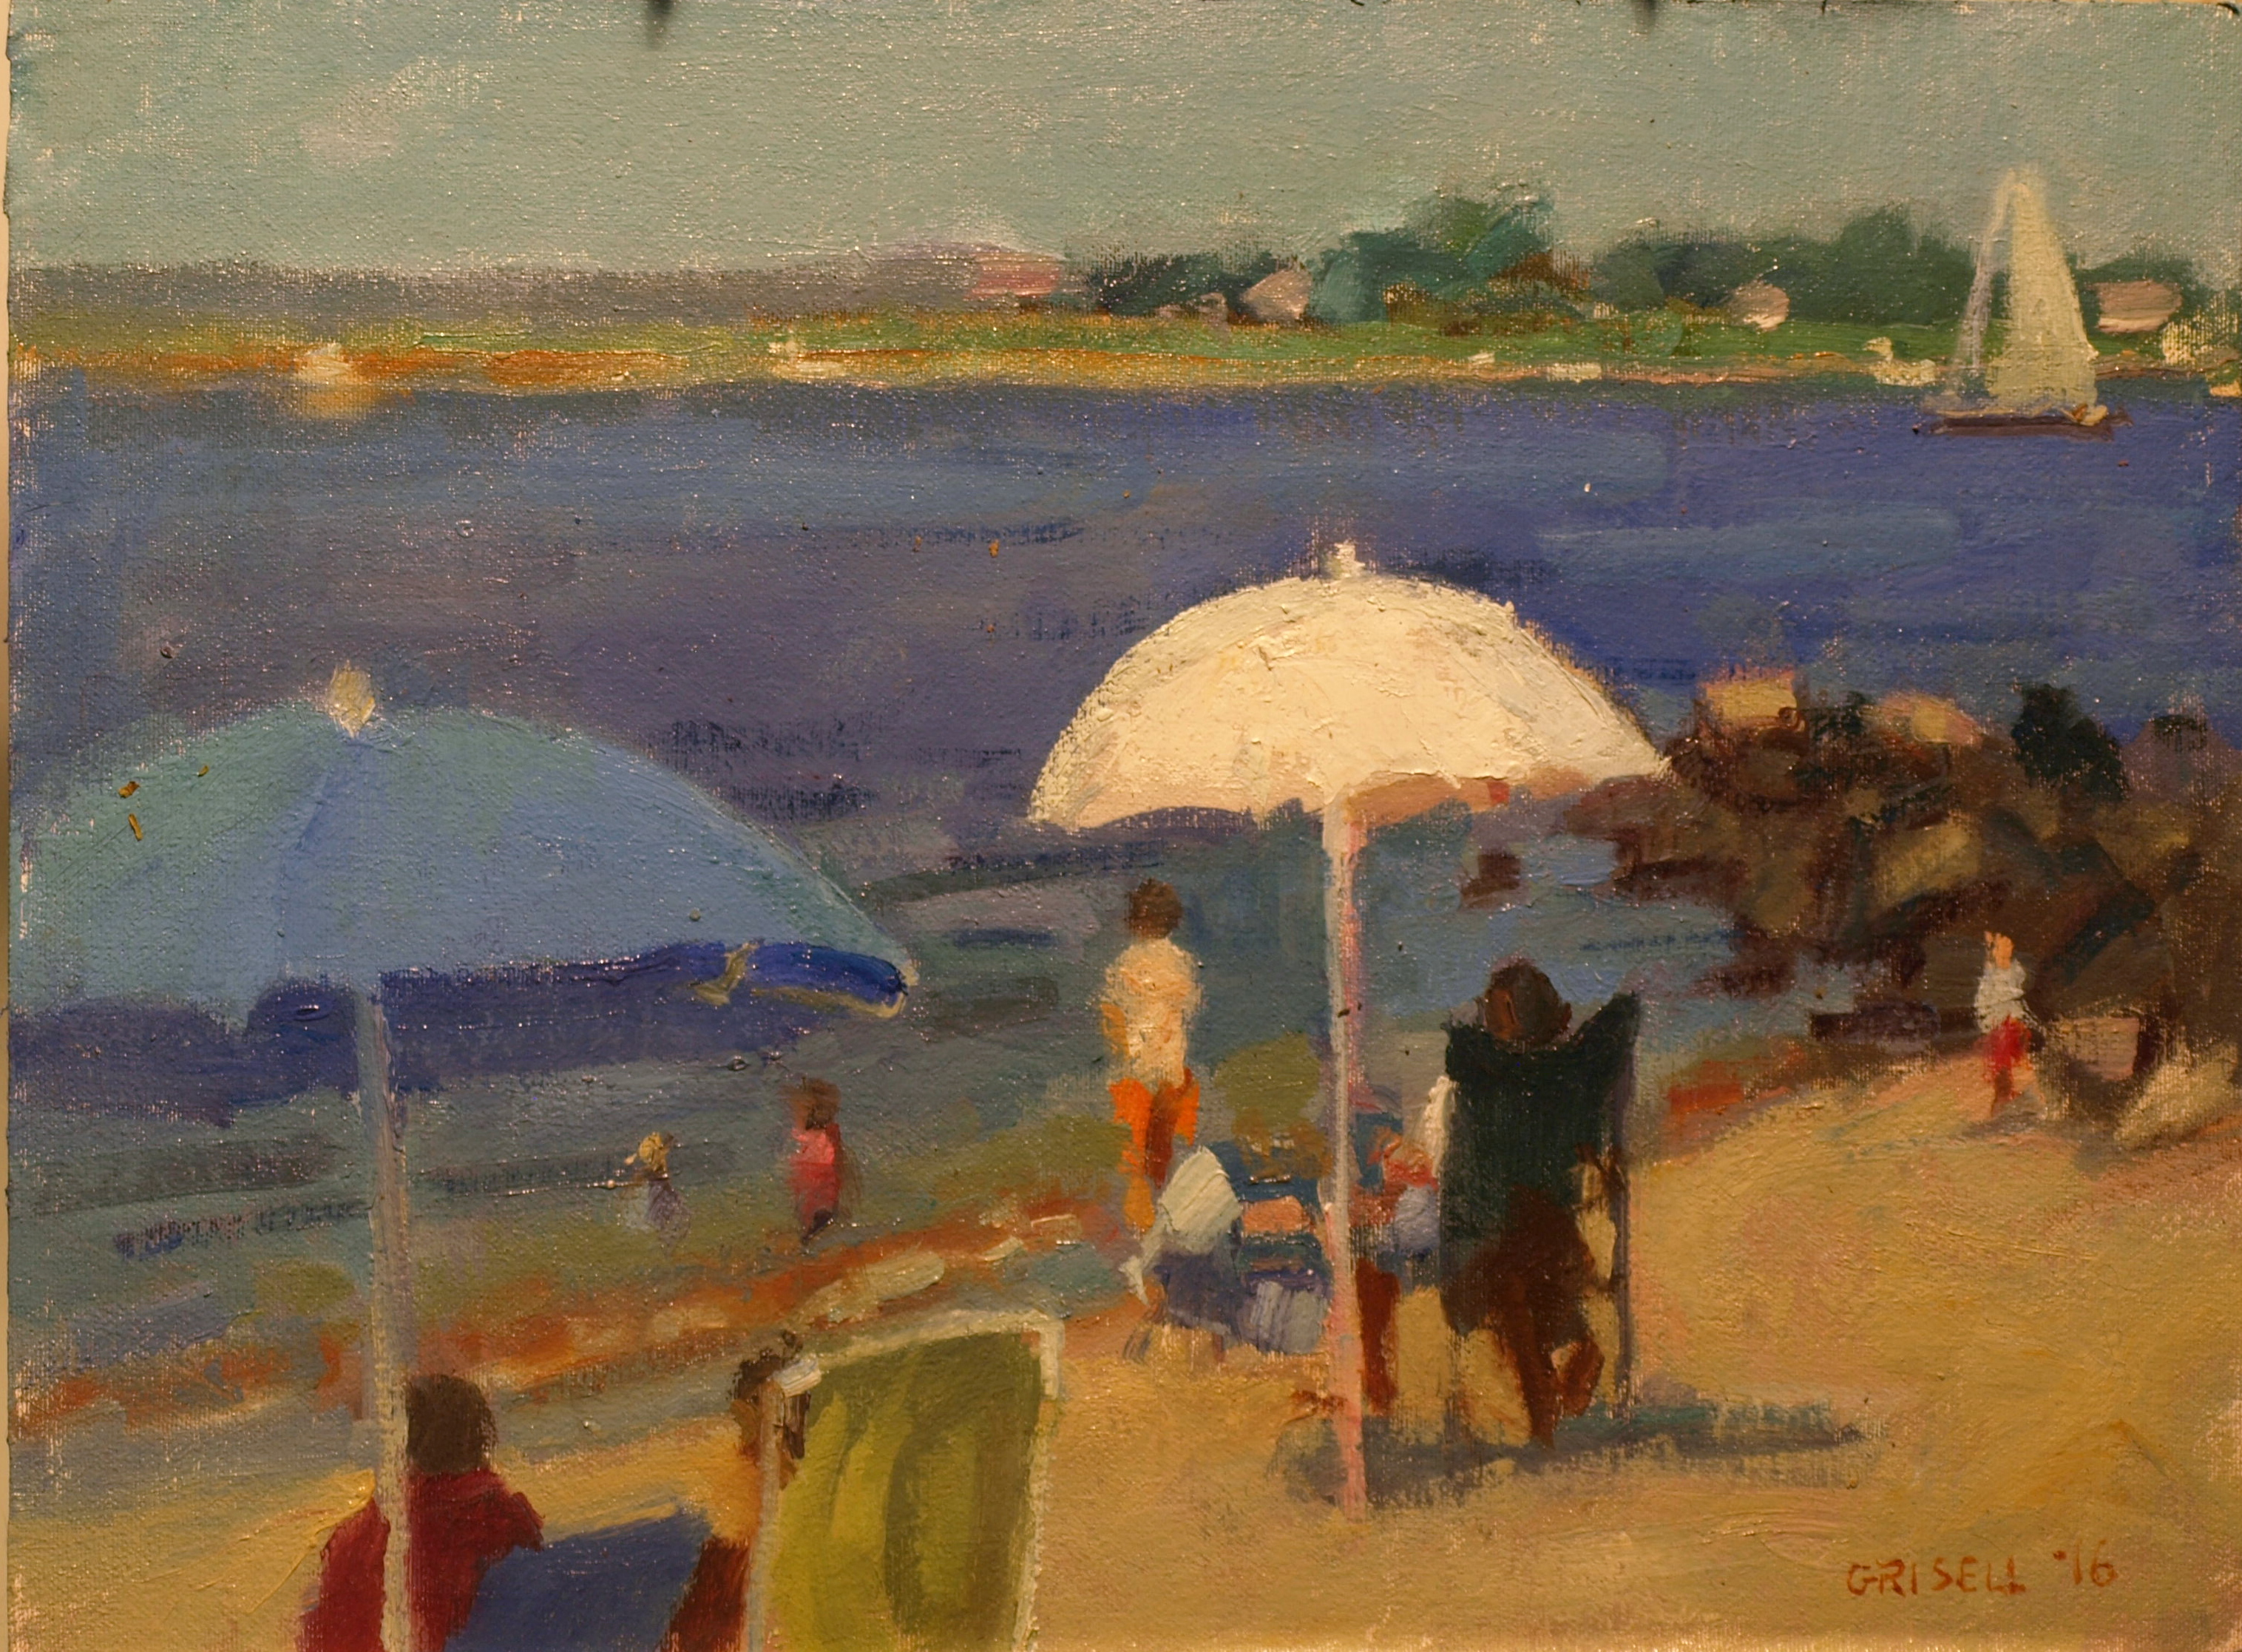 Beach Umbrellas, Oil on Canvas on Panel, 12 x 16 Inches, by Susan Grisell, $275